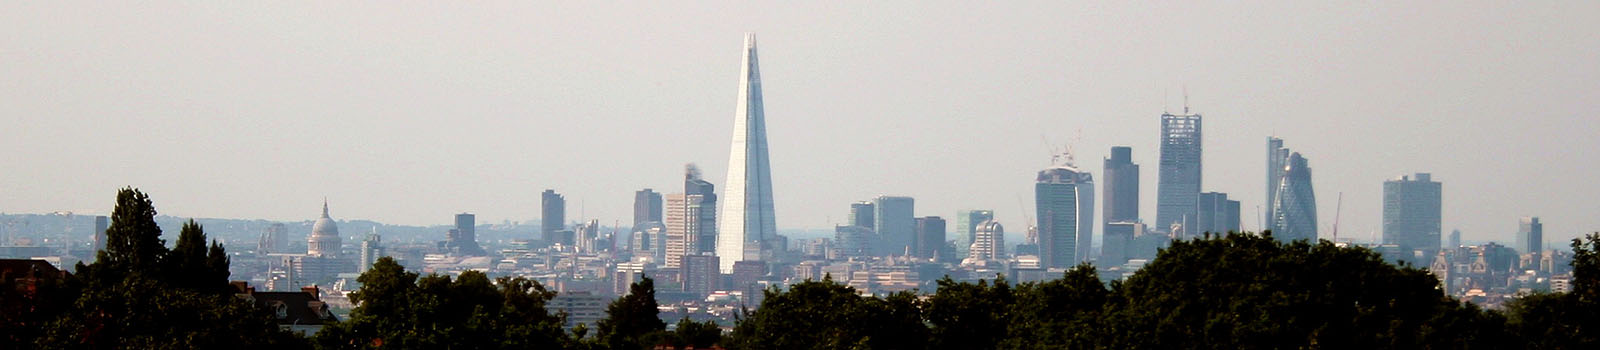 The London skyline viewed from the Horniman Museum in July 2013.